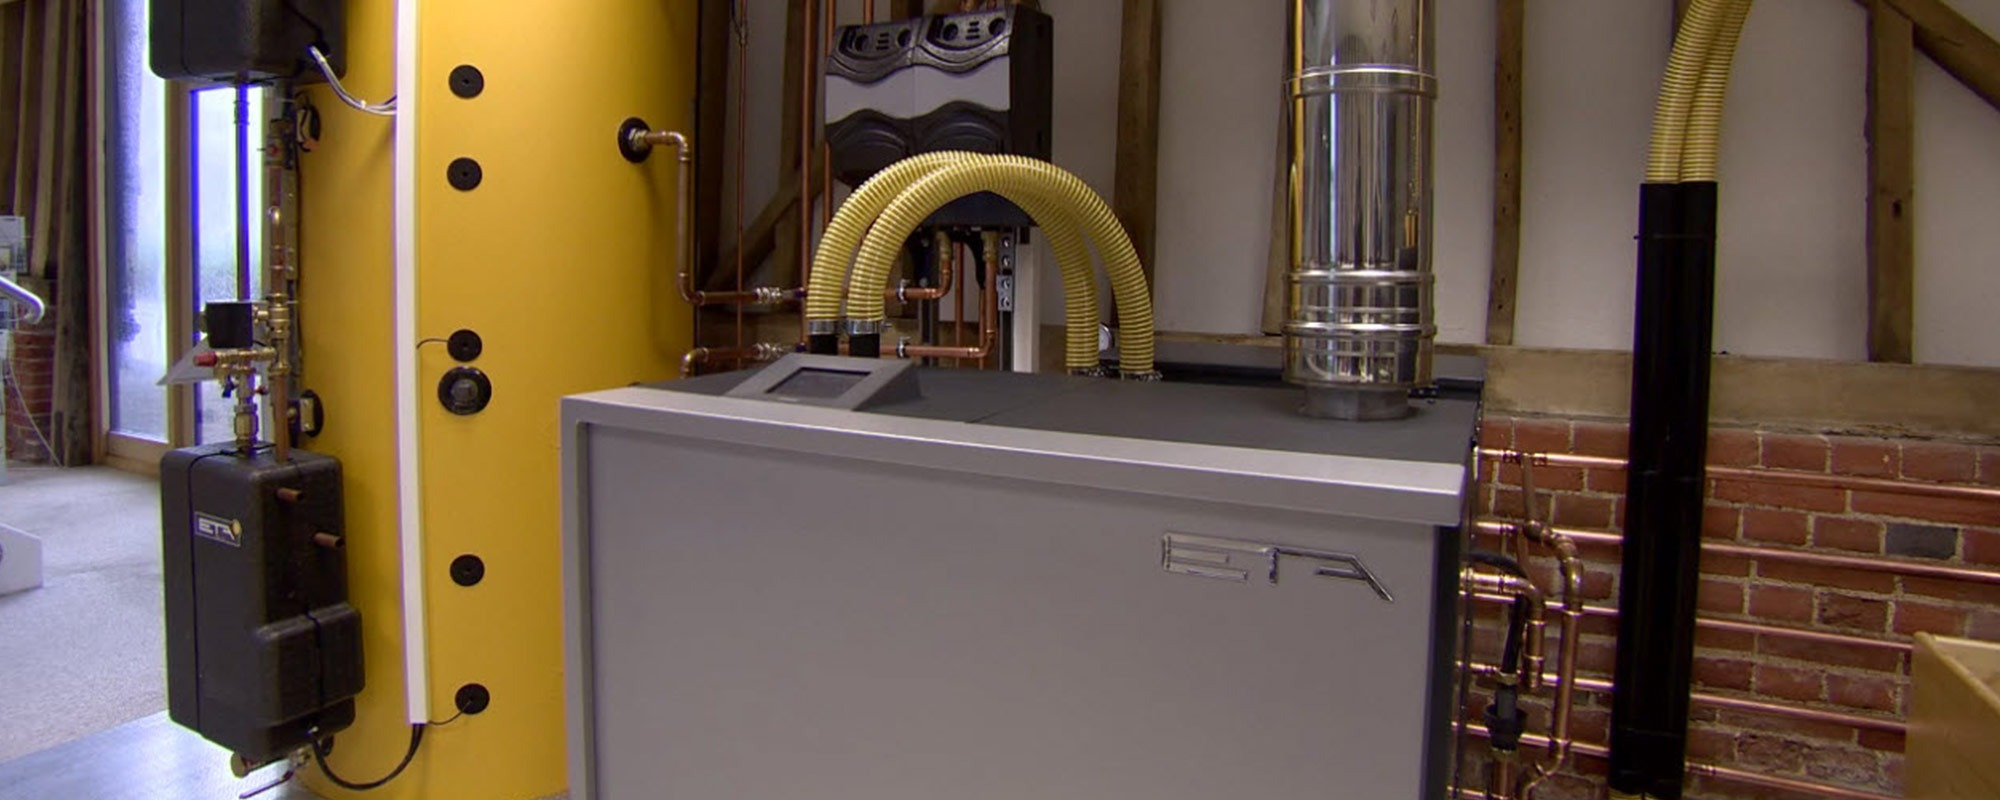 Why is Servicing & Maintaining Your Biomass Boiler Important?